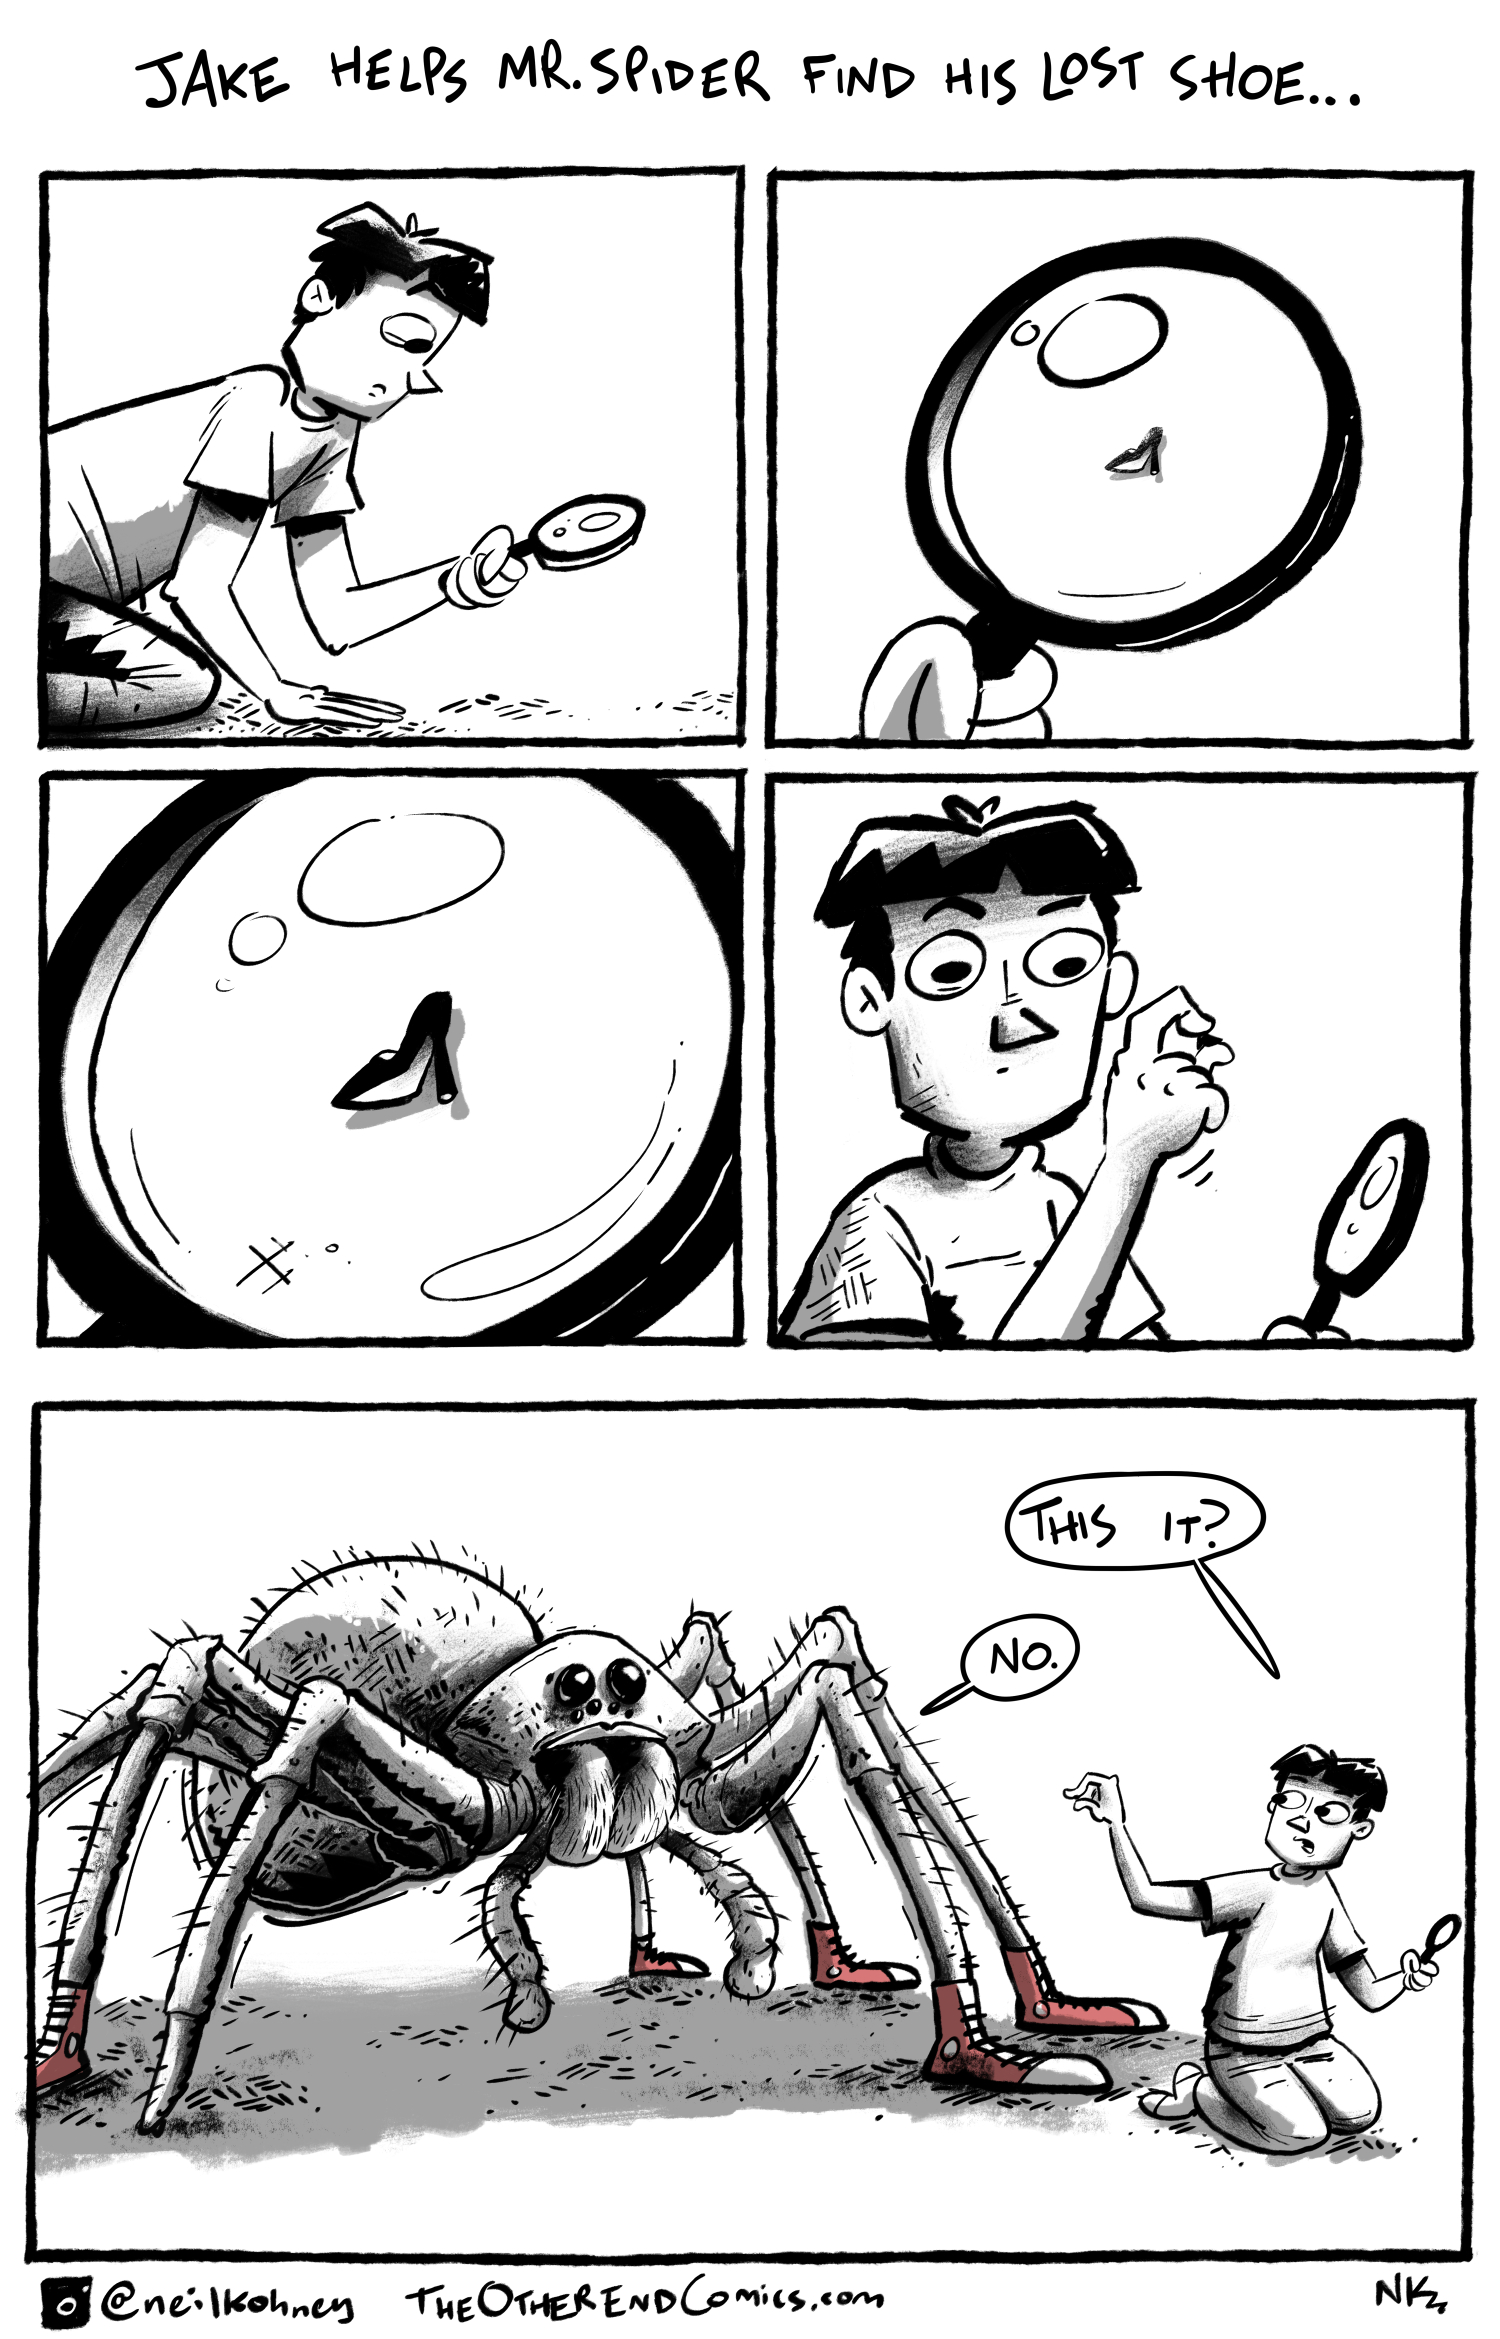 The spider should be wearing slip on shoes since he can't tie the laces. This comic is so fake